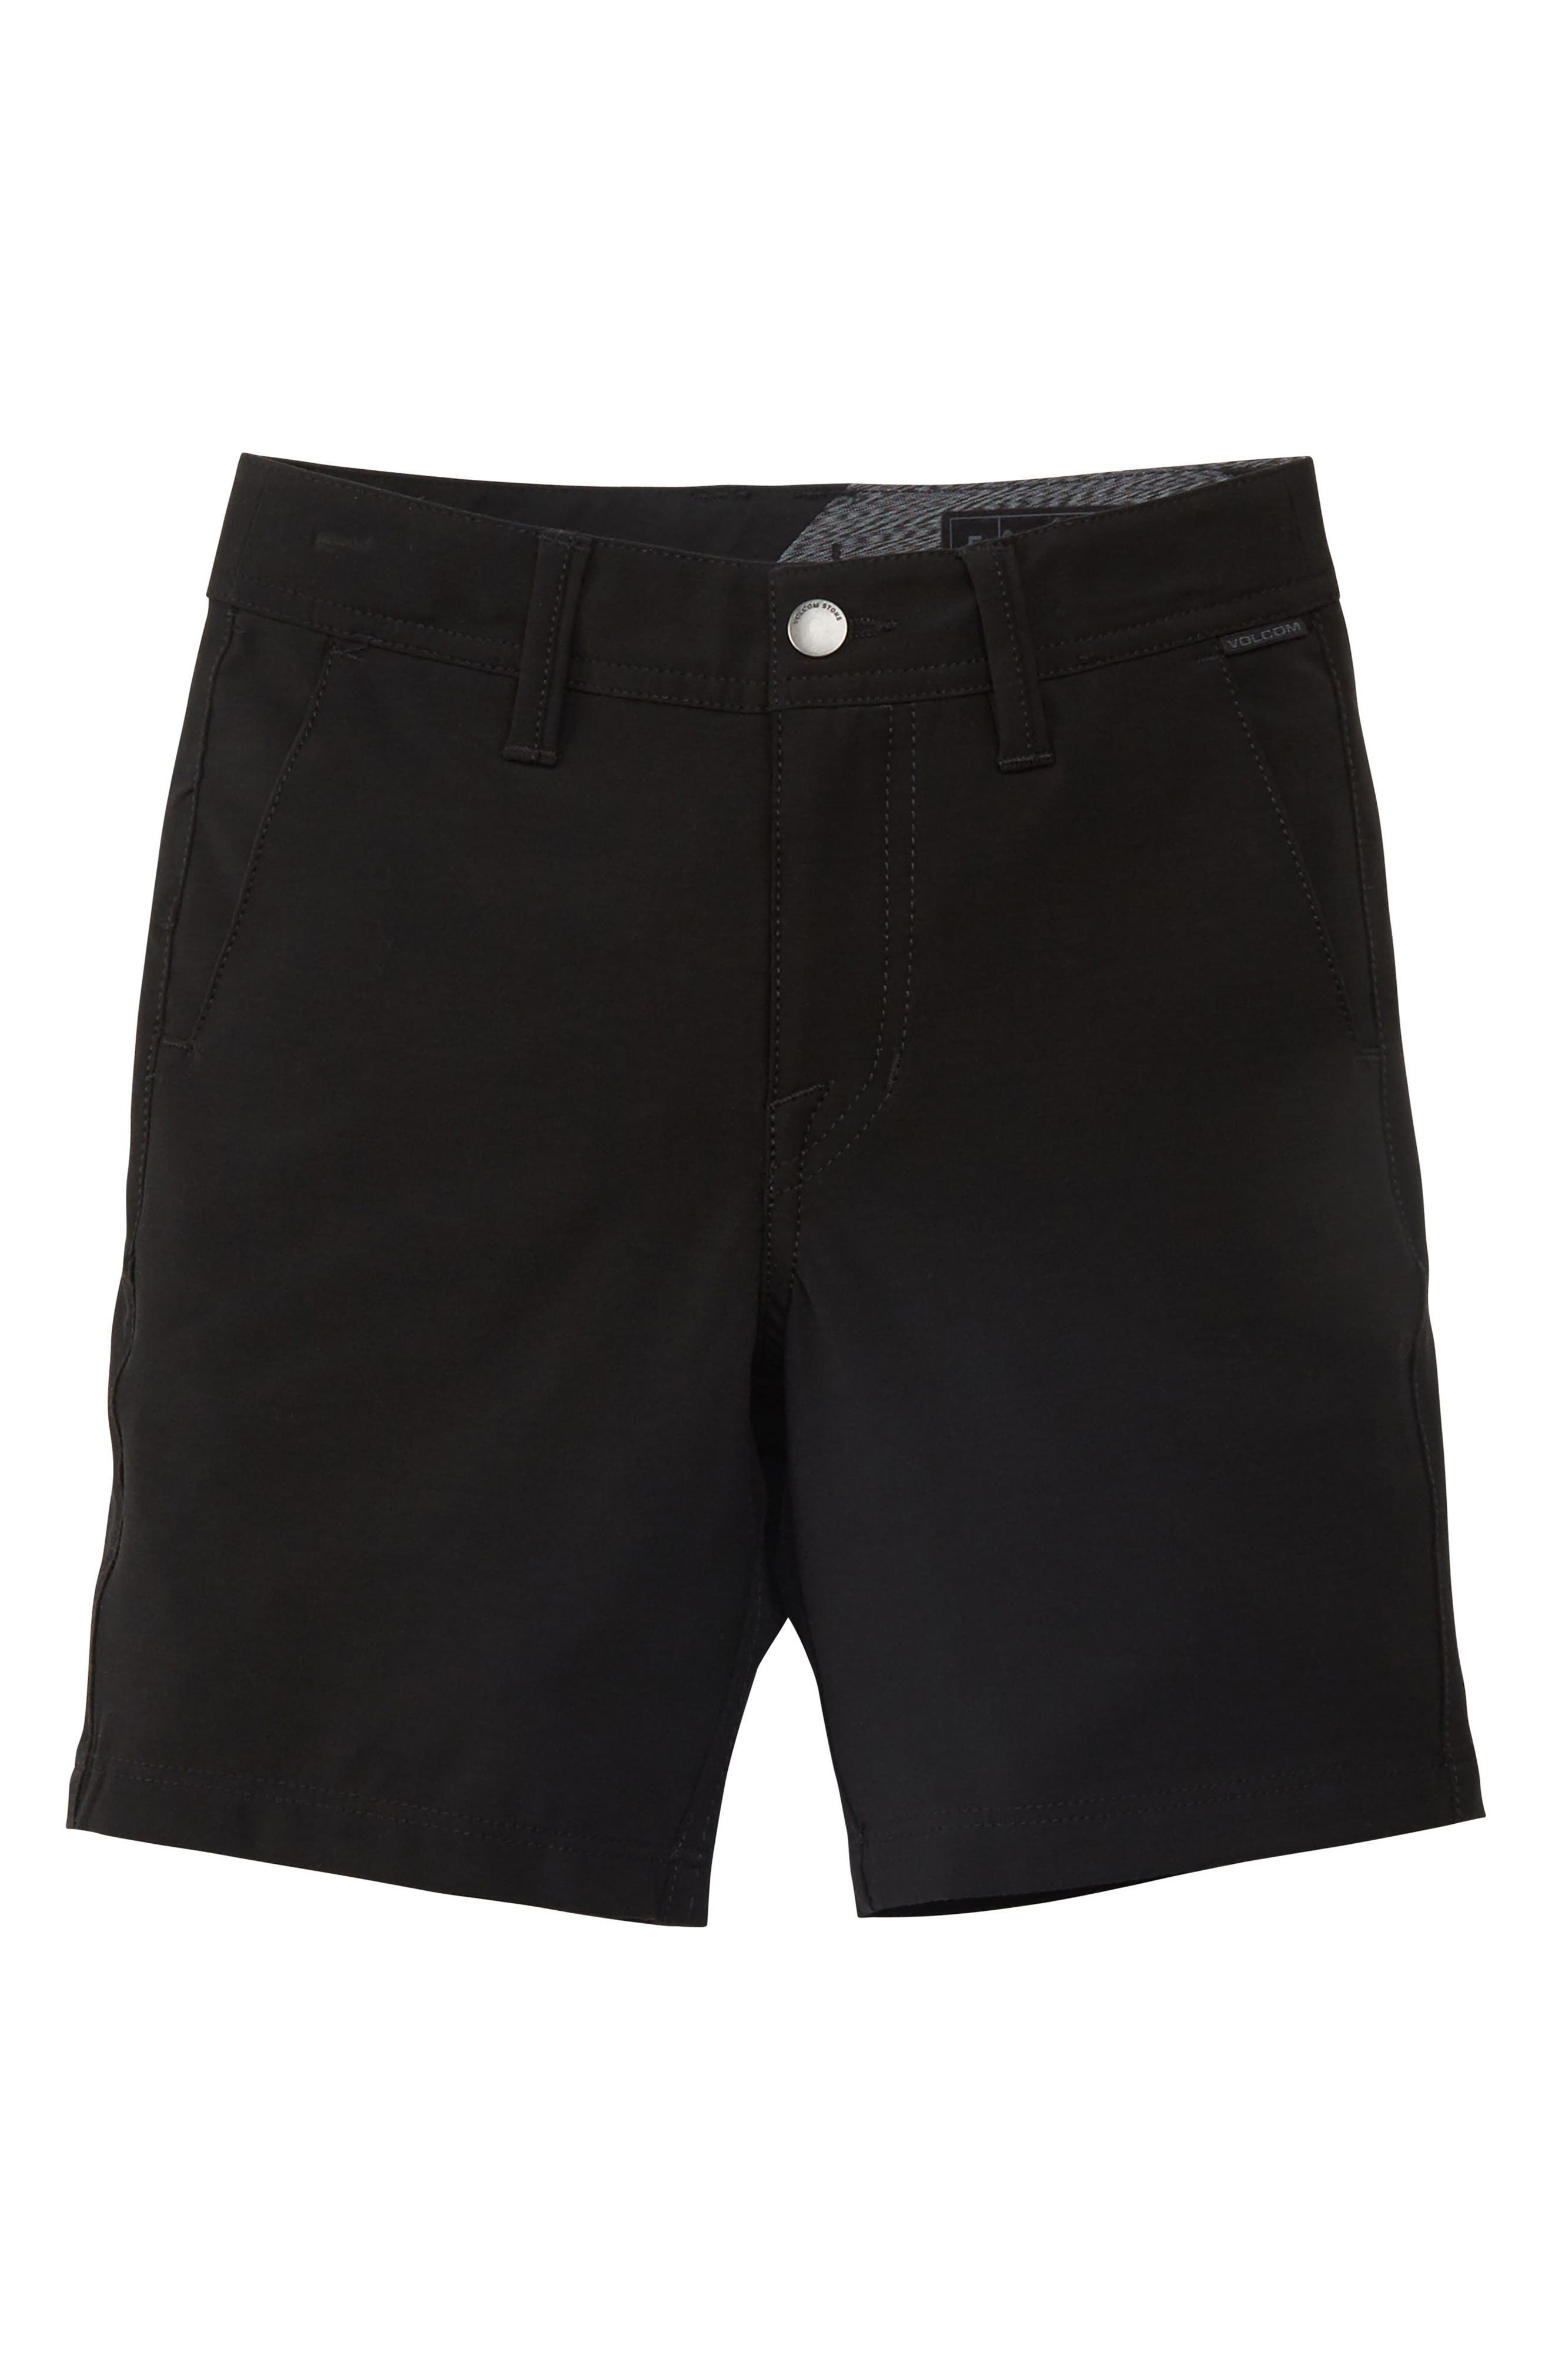 Surf N' Turf Hybrid Shorts,                         Main,                         color, Black